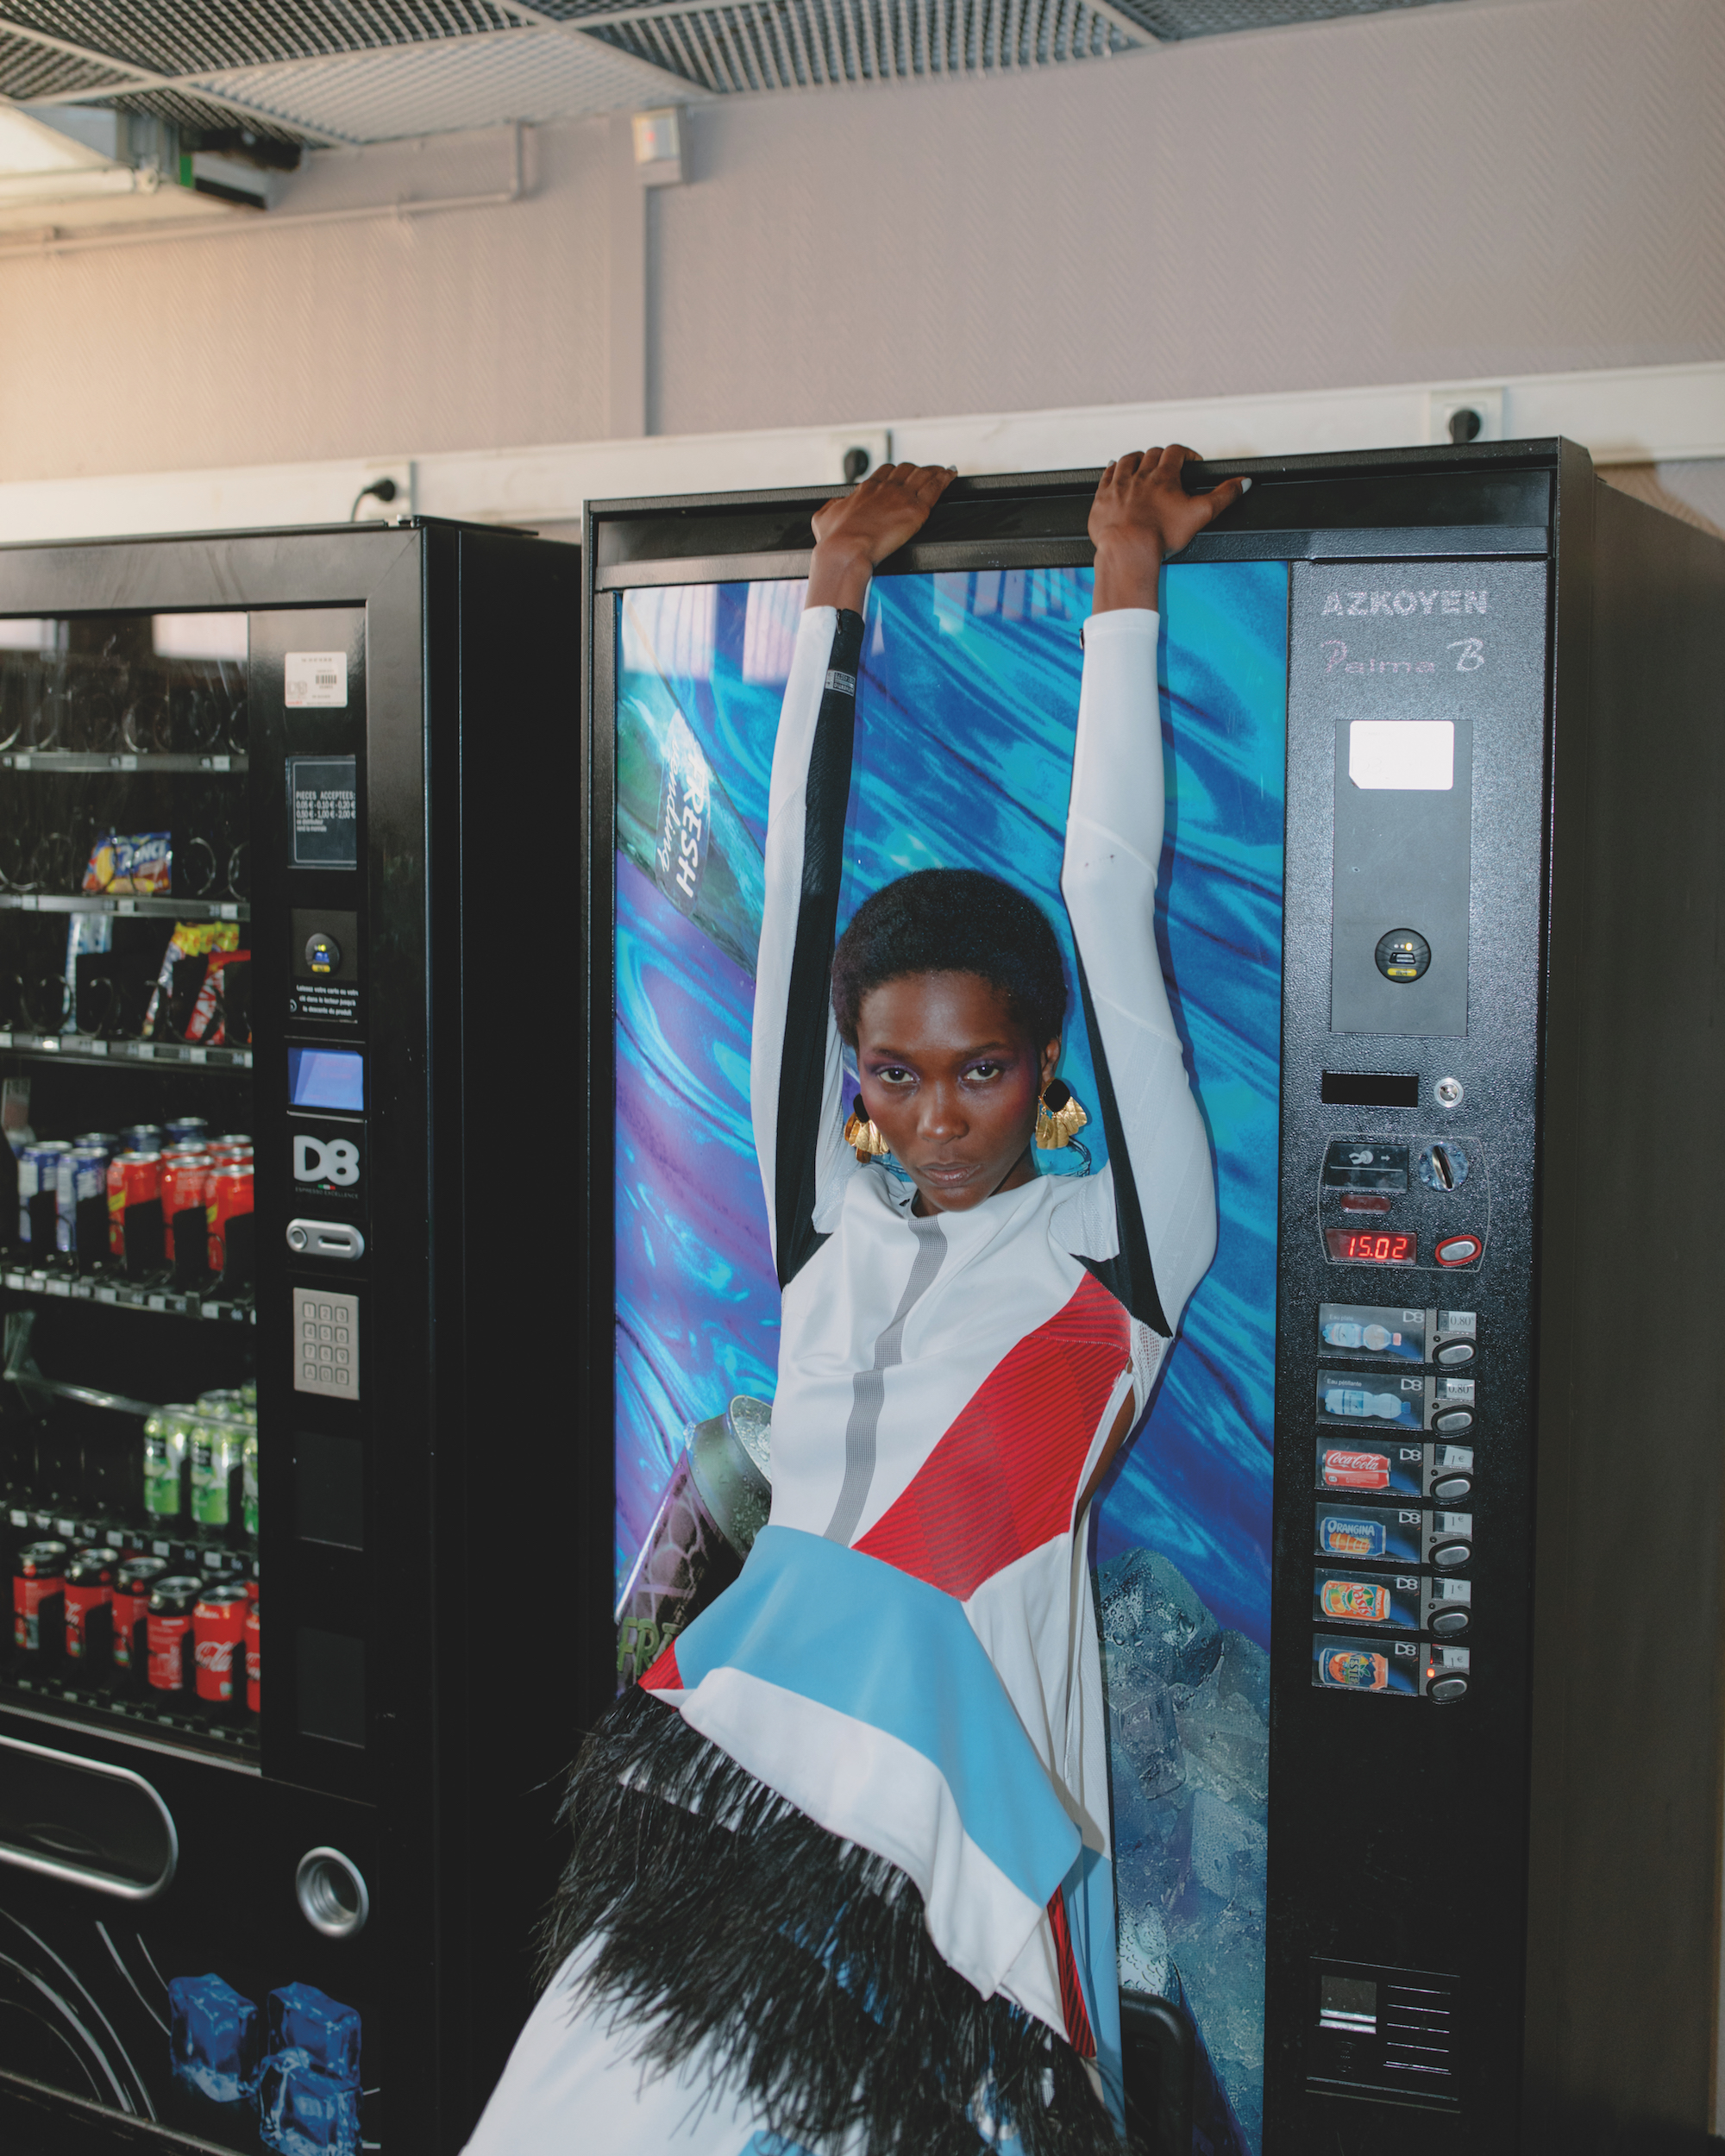 Spin around it's your white light fashion editorial from the Winter issue pepsi machine